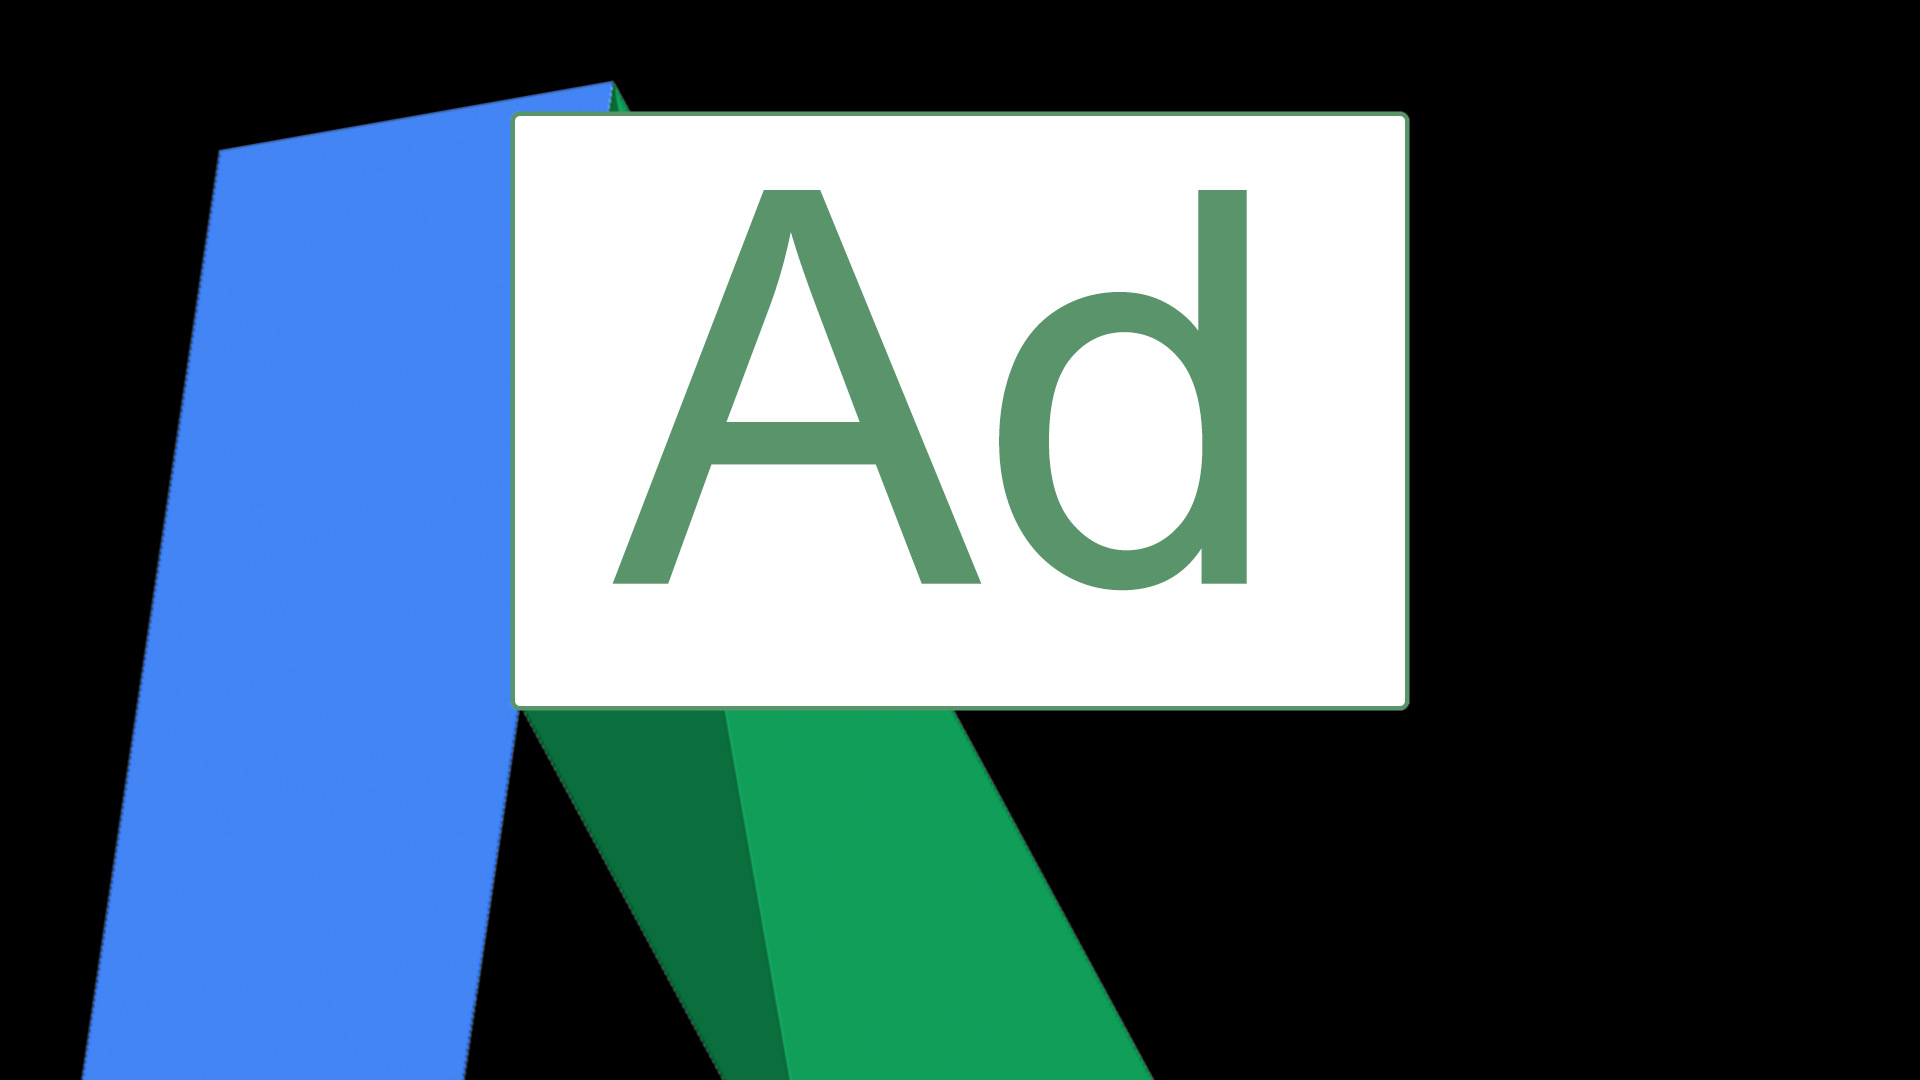 A look back at how Google has treated ads in search results from blue shading to the latest version of today. The post UPDATED: A visual history of Google ad labeling in search results appeared first on Search Engine Land. Please visit Search Engine Land for the full article.